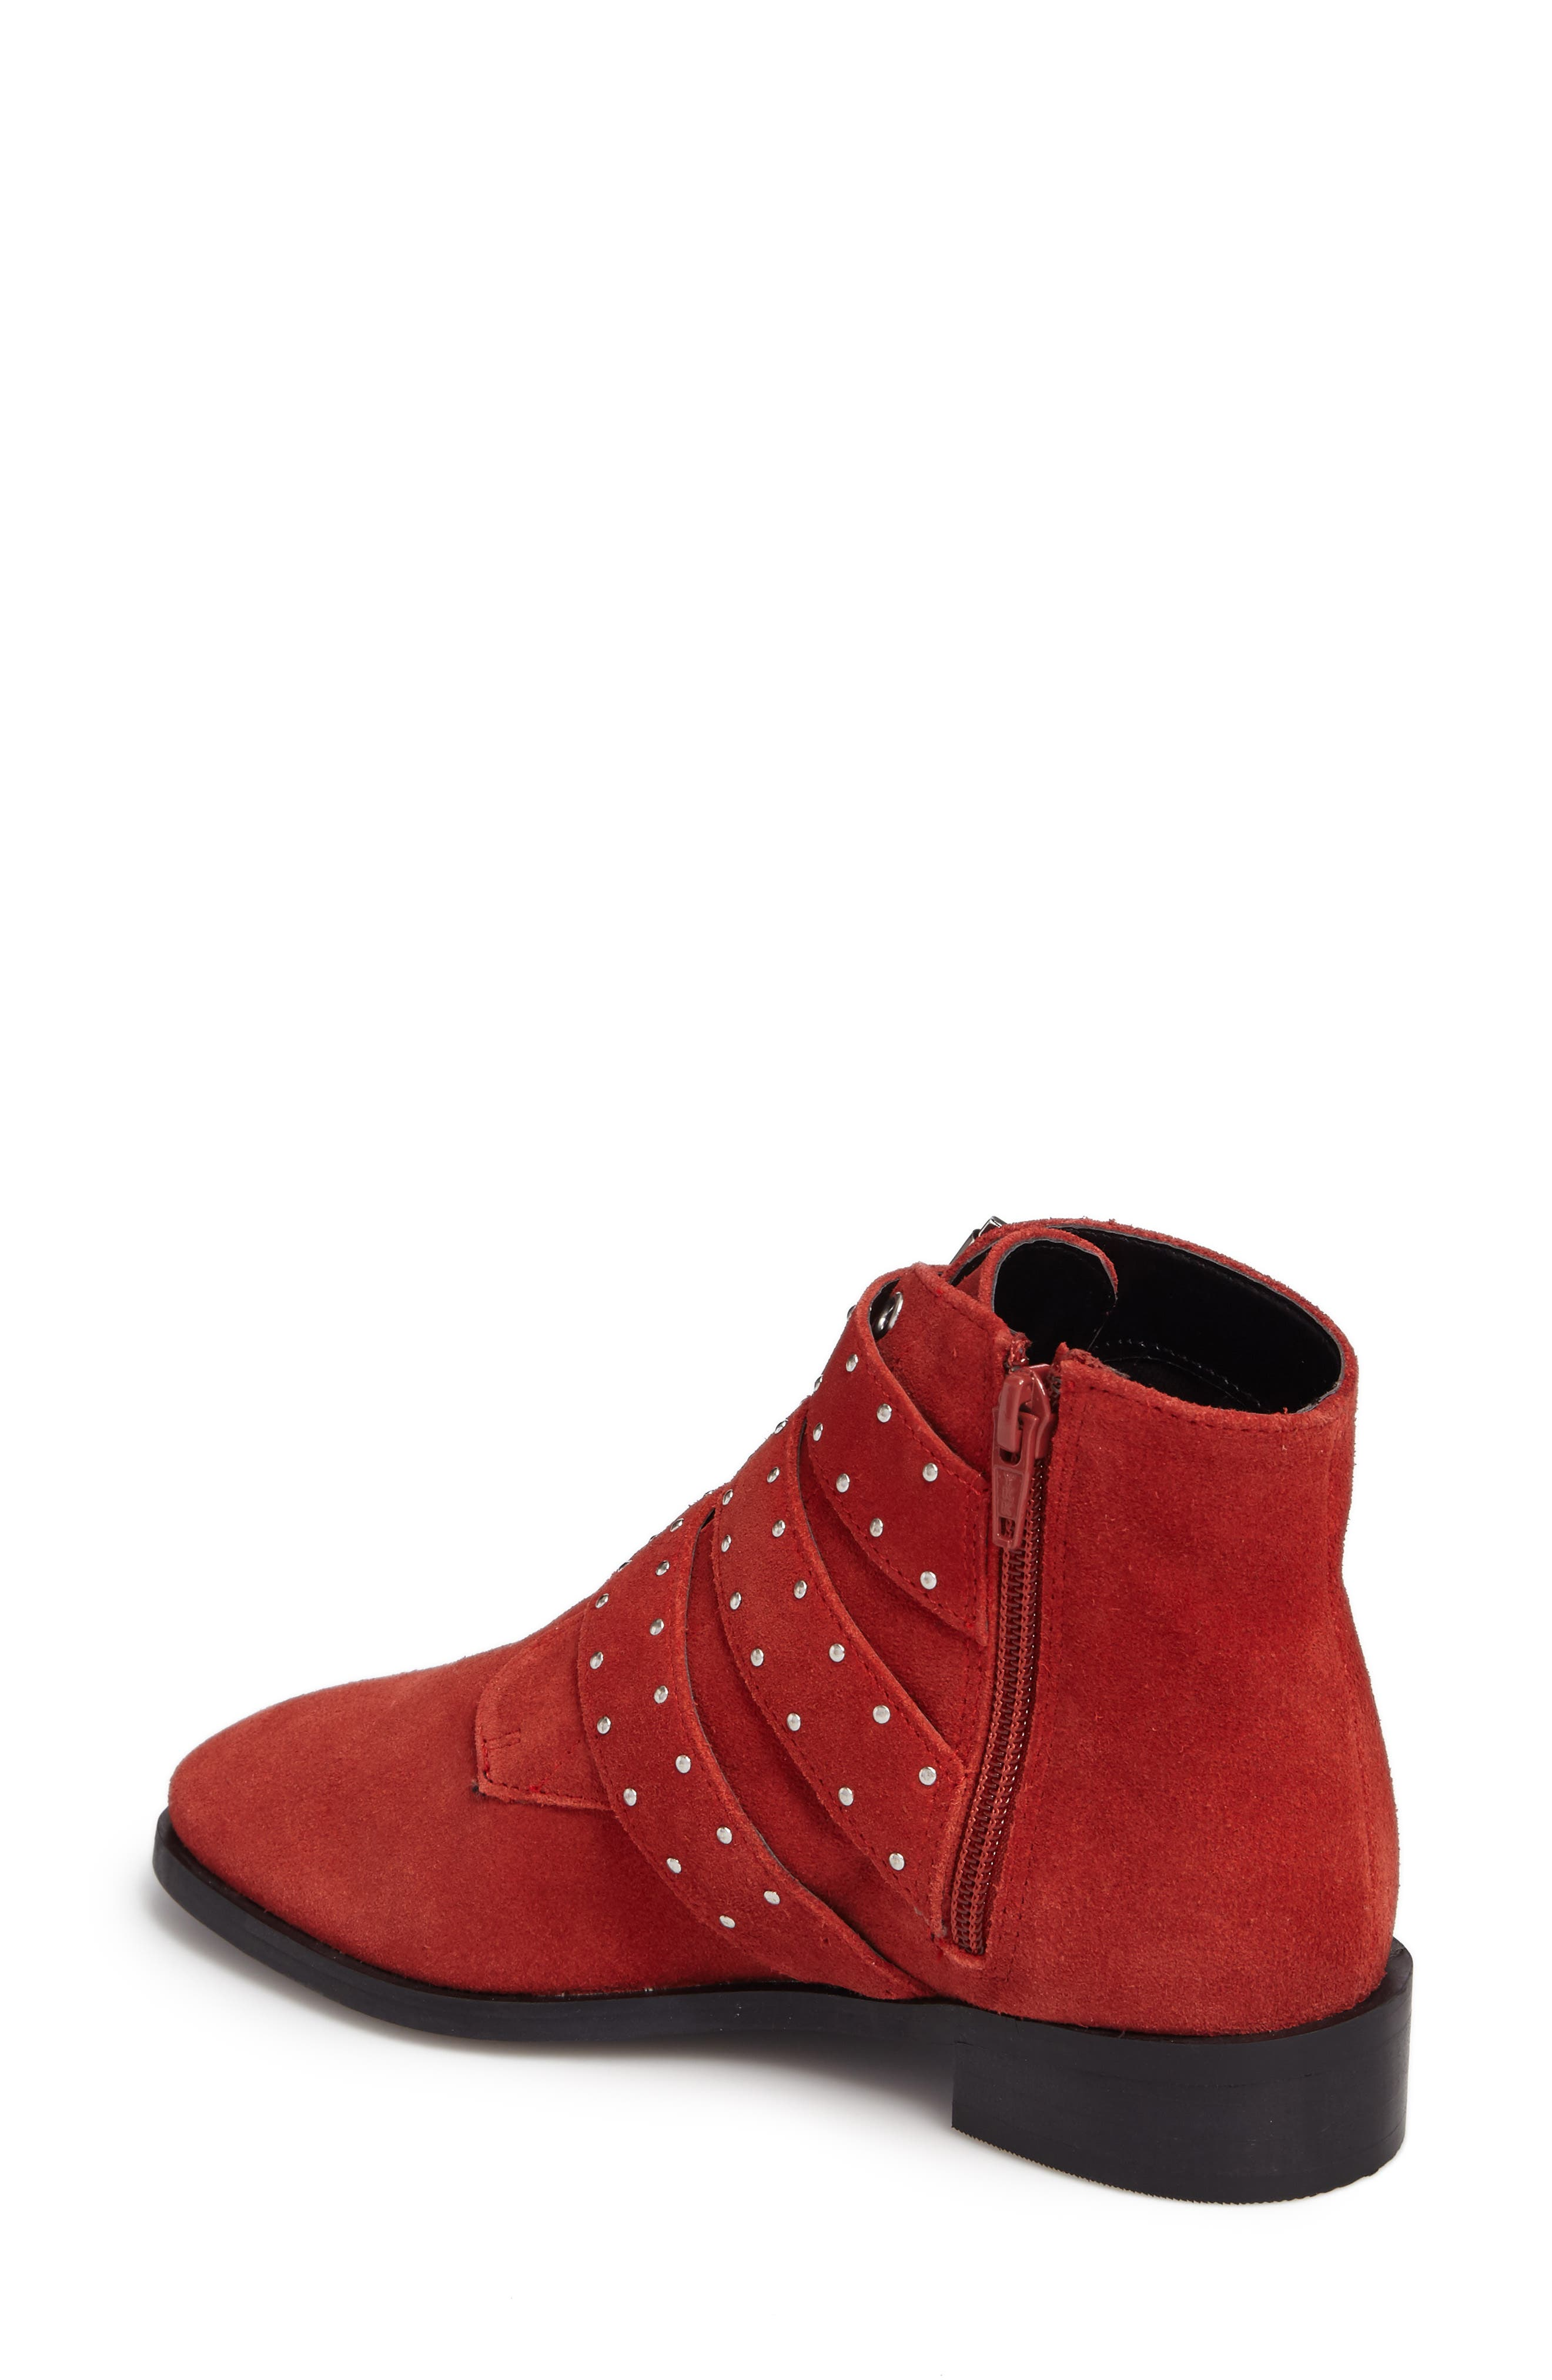 Krown Studded Bootie,                             Alternate thumbnail 4, color,